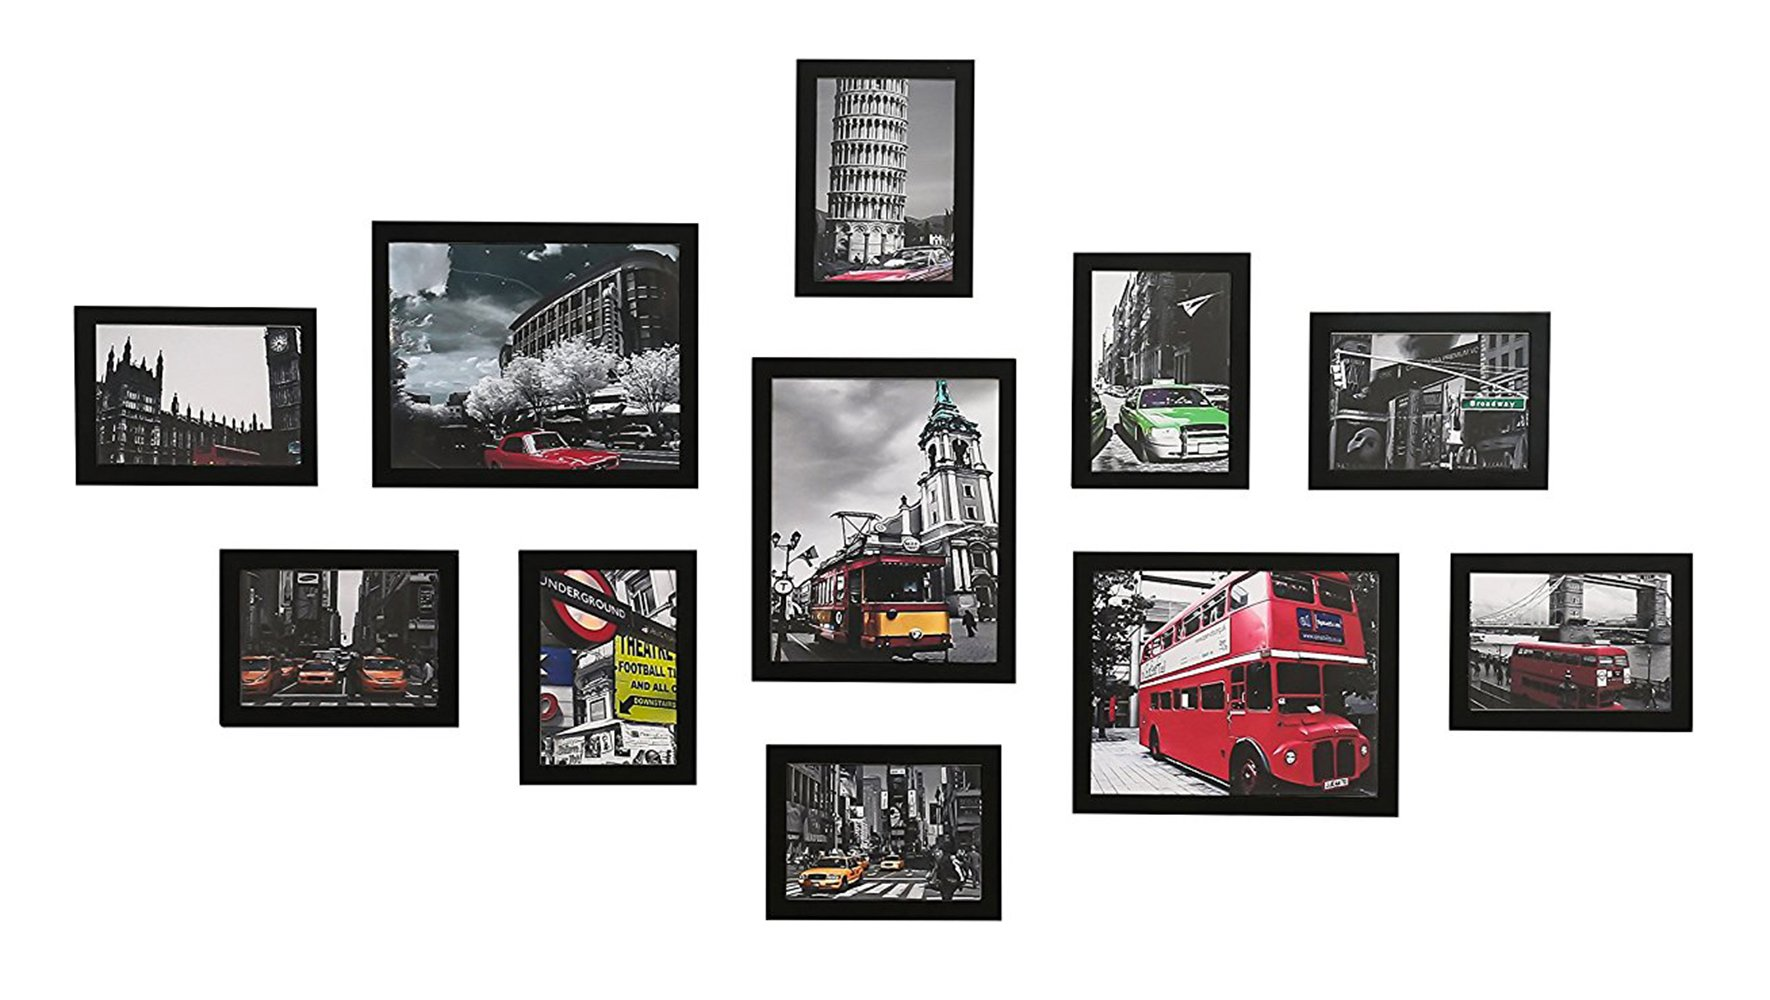 WOOD MEETS COLOR Wall Picture Frames Set of 11, with Hanging Template, Real Glass Window and Photo Mats, 3-8x10 and 8-5x7 Collage Frames (Black)